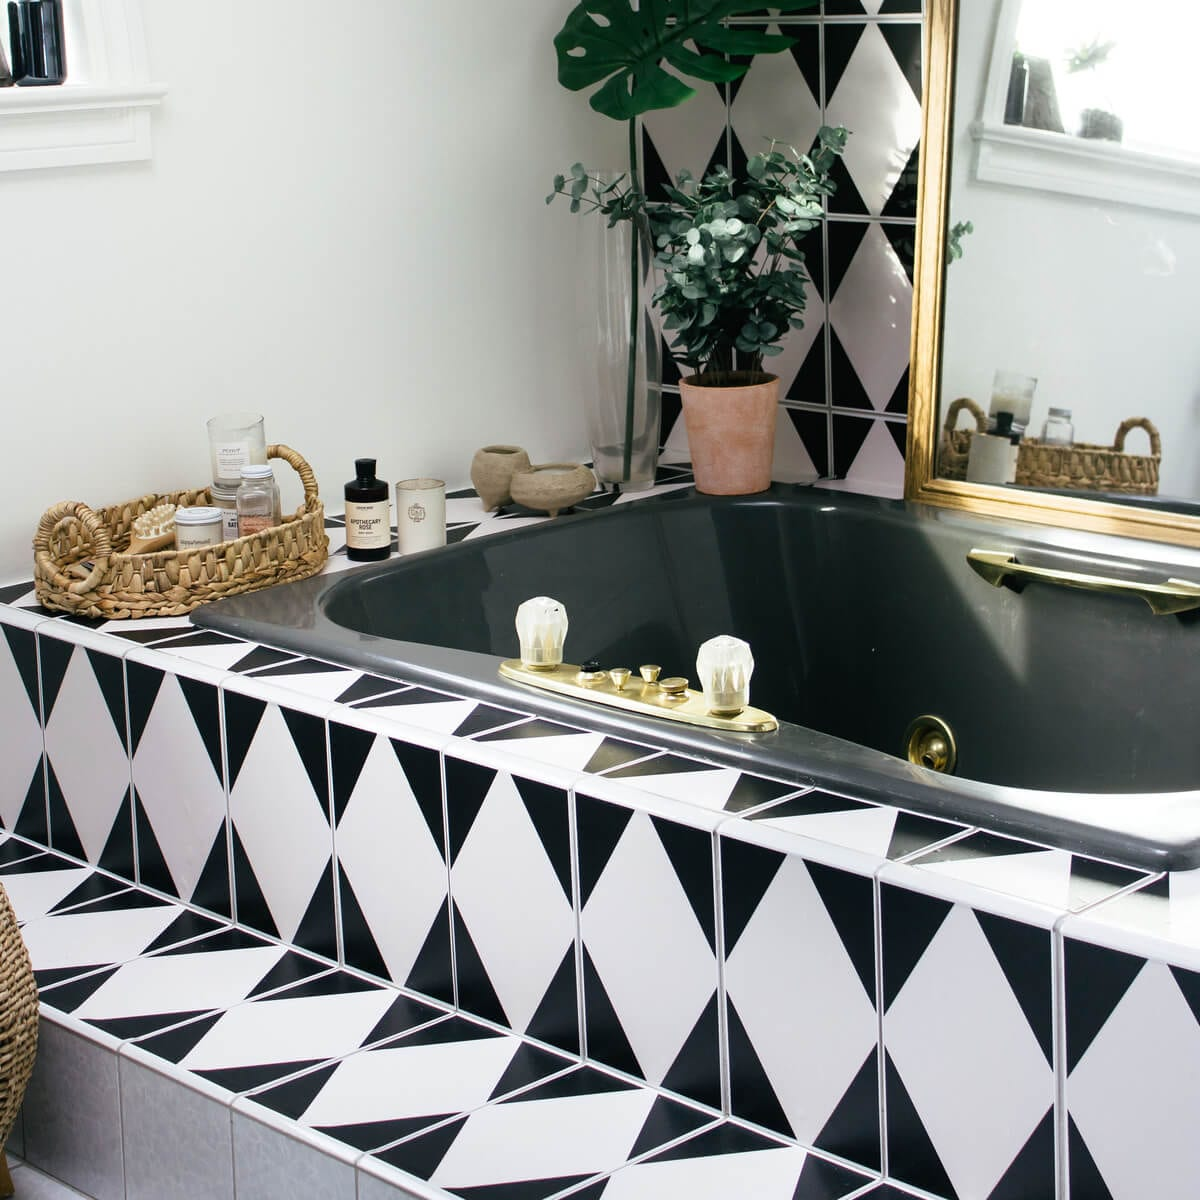 Cultivating a New Level of Bathroom Clean With Public Goods